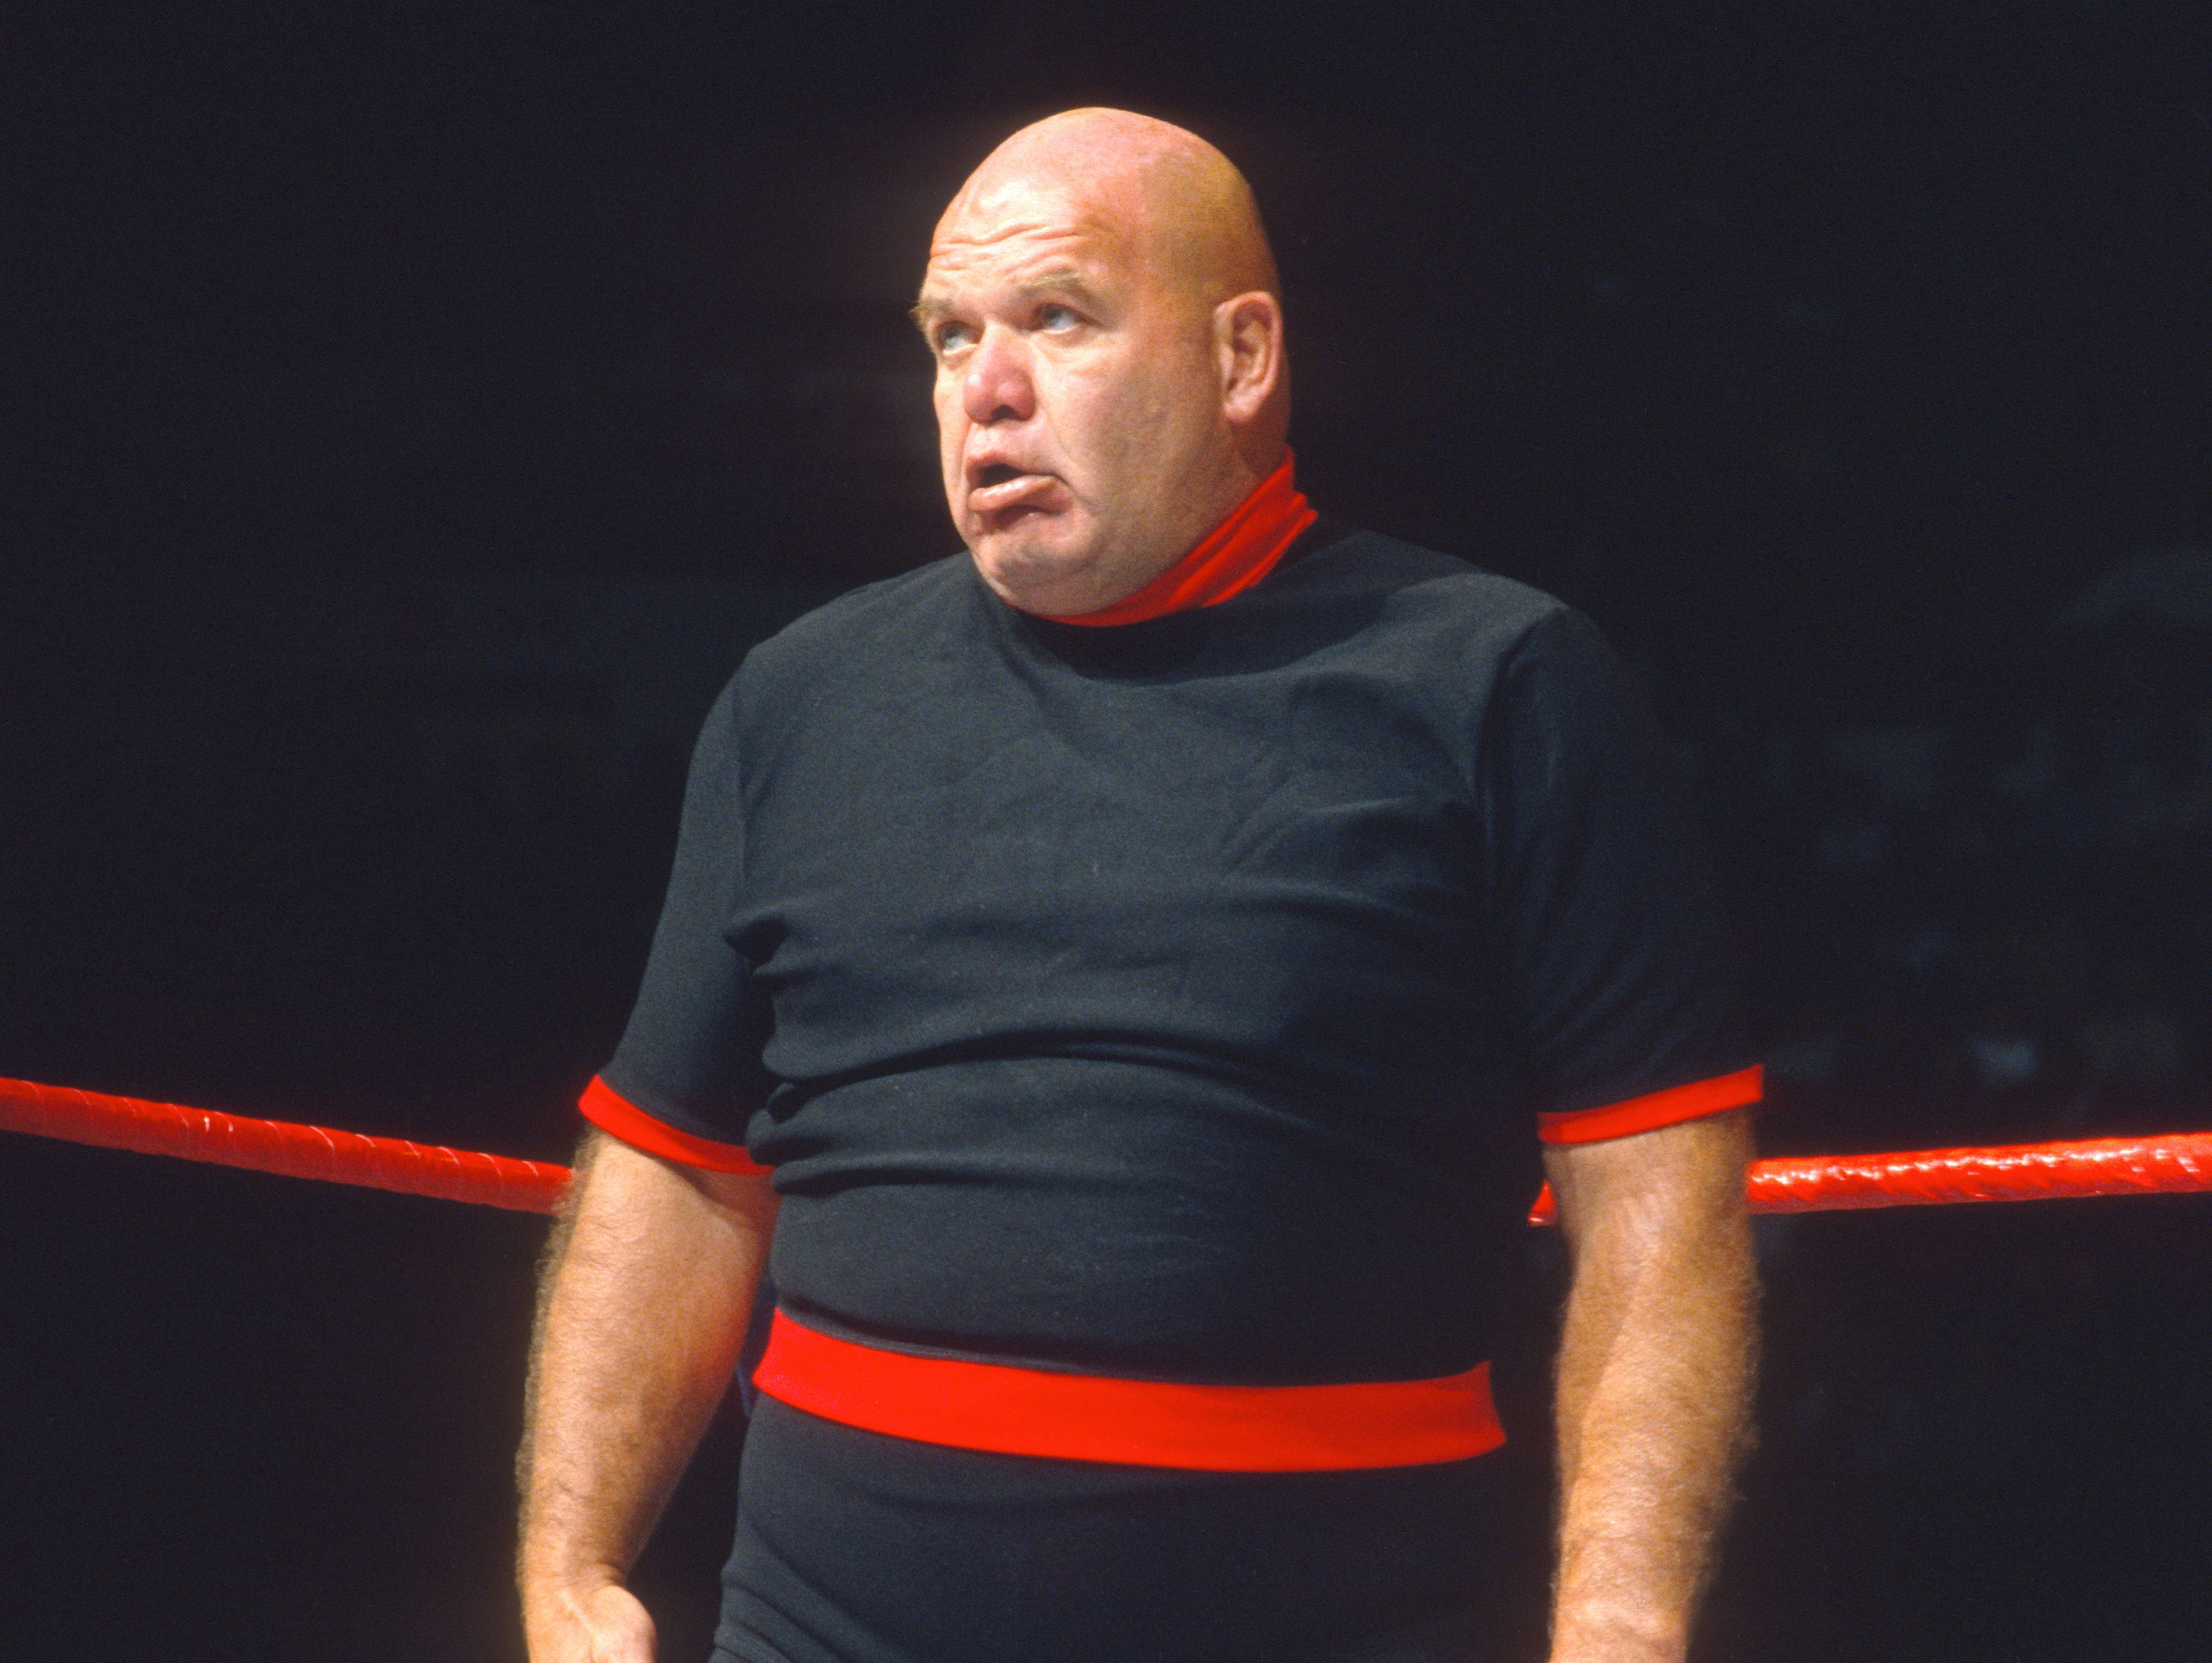 Steele's pro wrestling stardom grew during the 1980s, but is also a Hall-of-Fame football coach who was at Madison Heights Madison for 28 years.